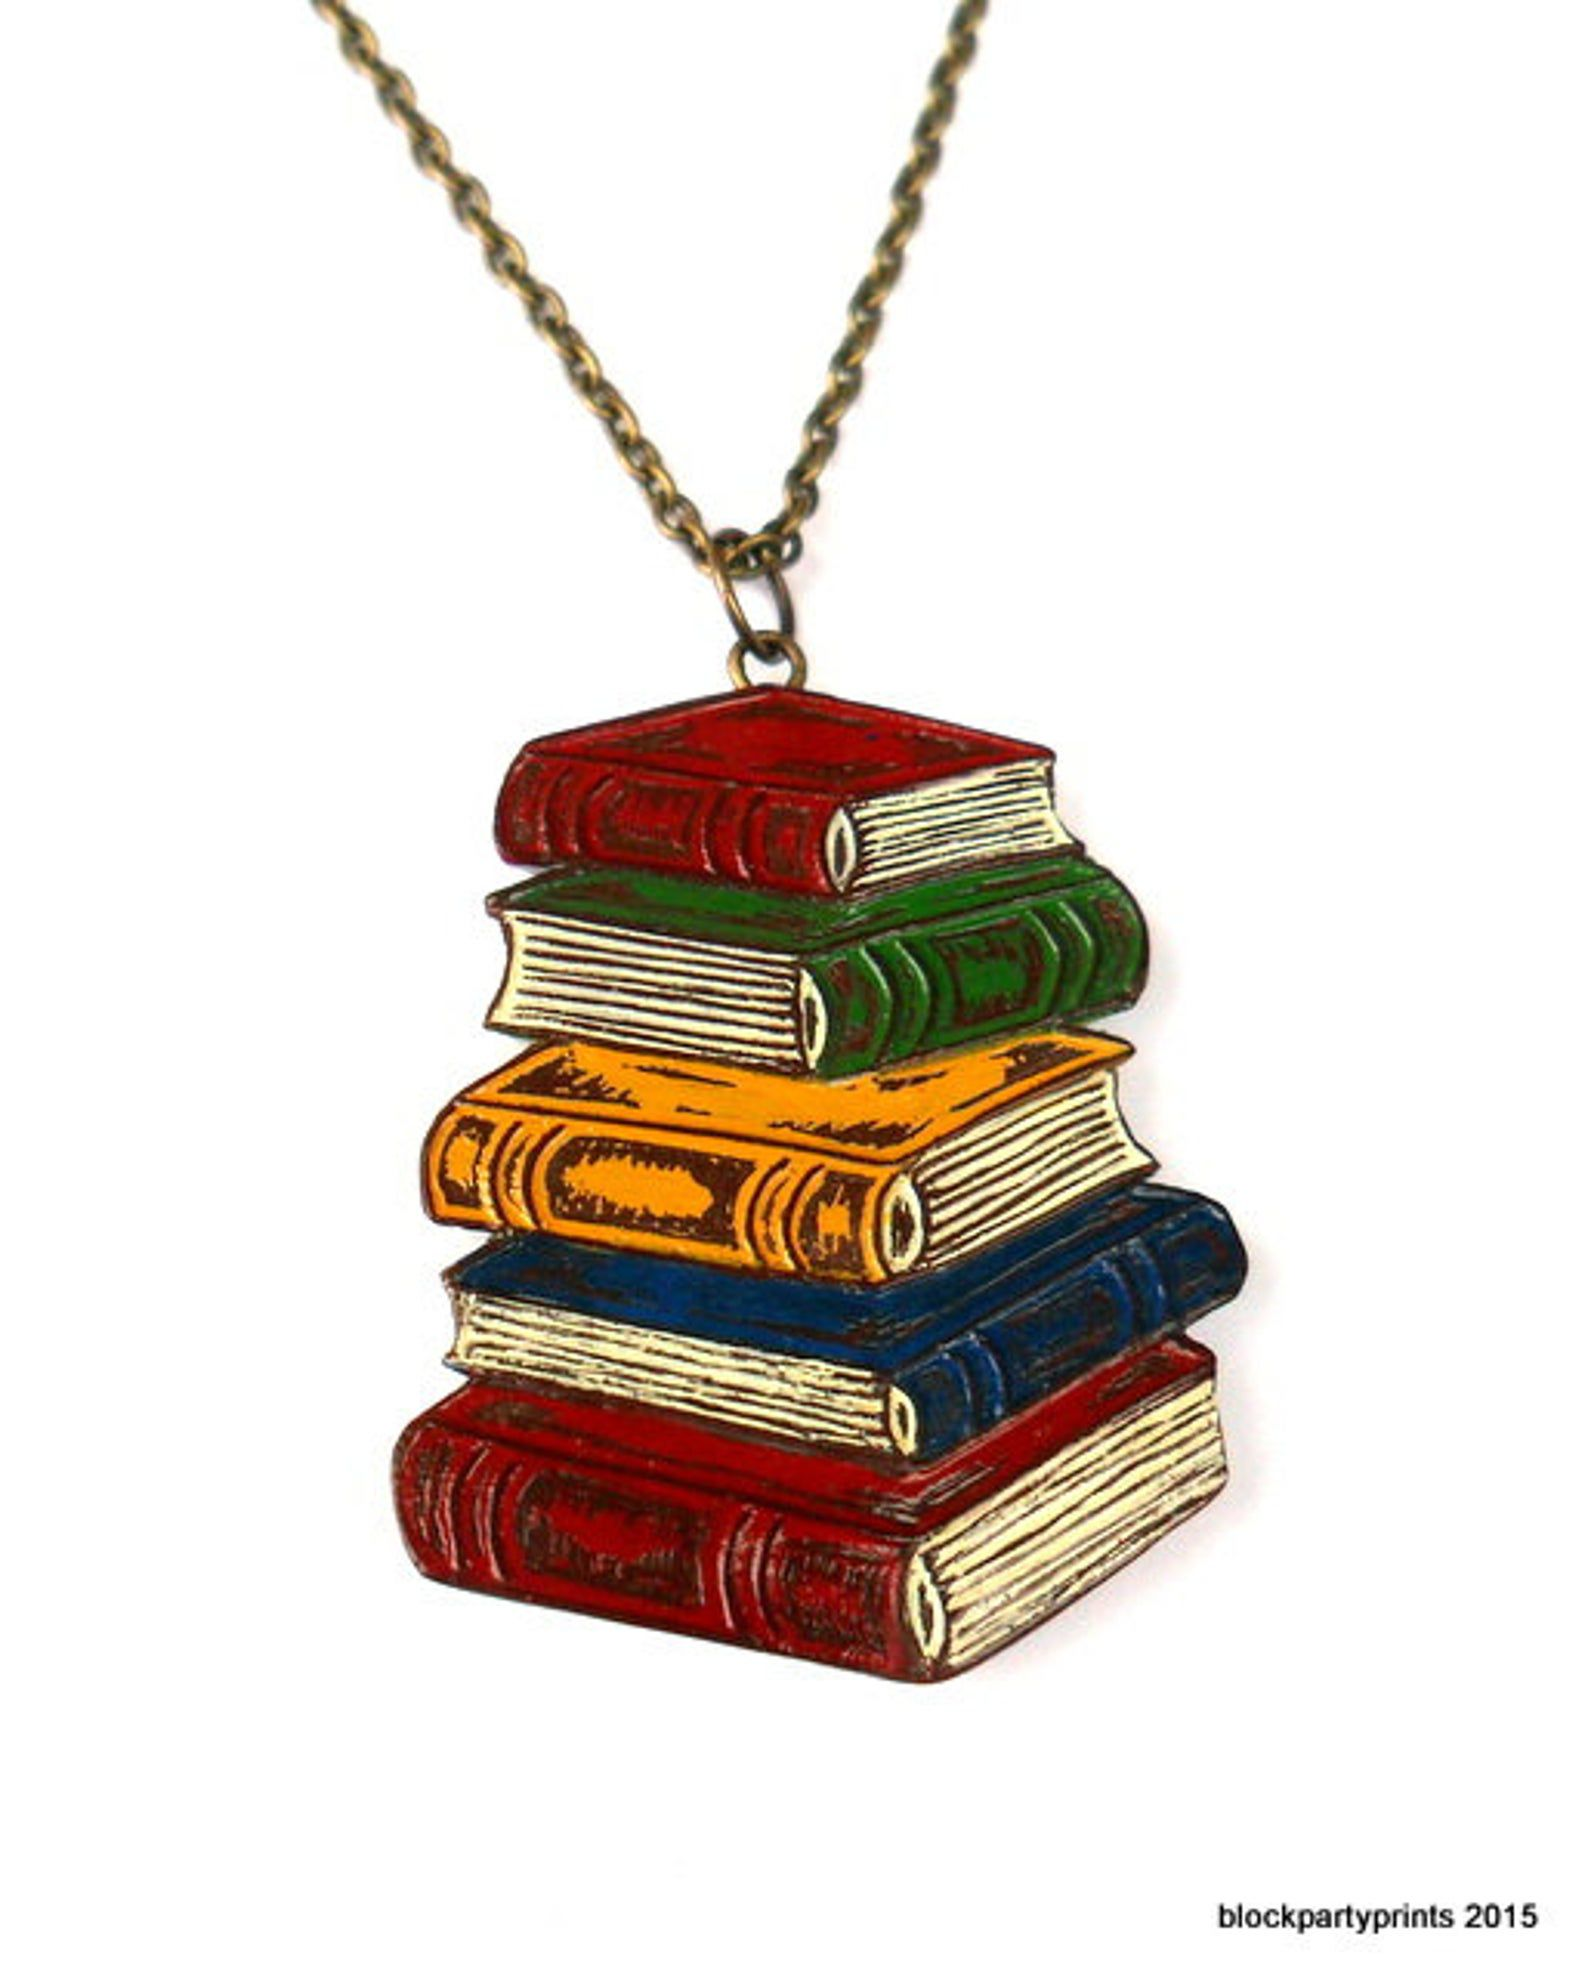 A pendant of red, green, blue, and yellow antique looking books on a bronze chain.